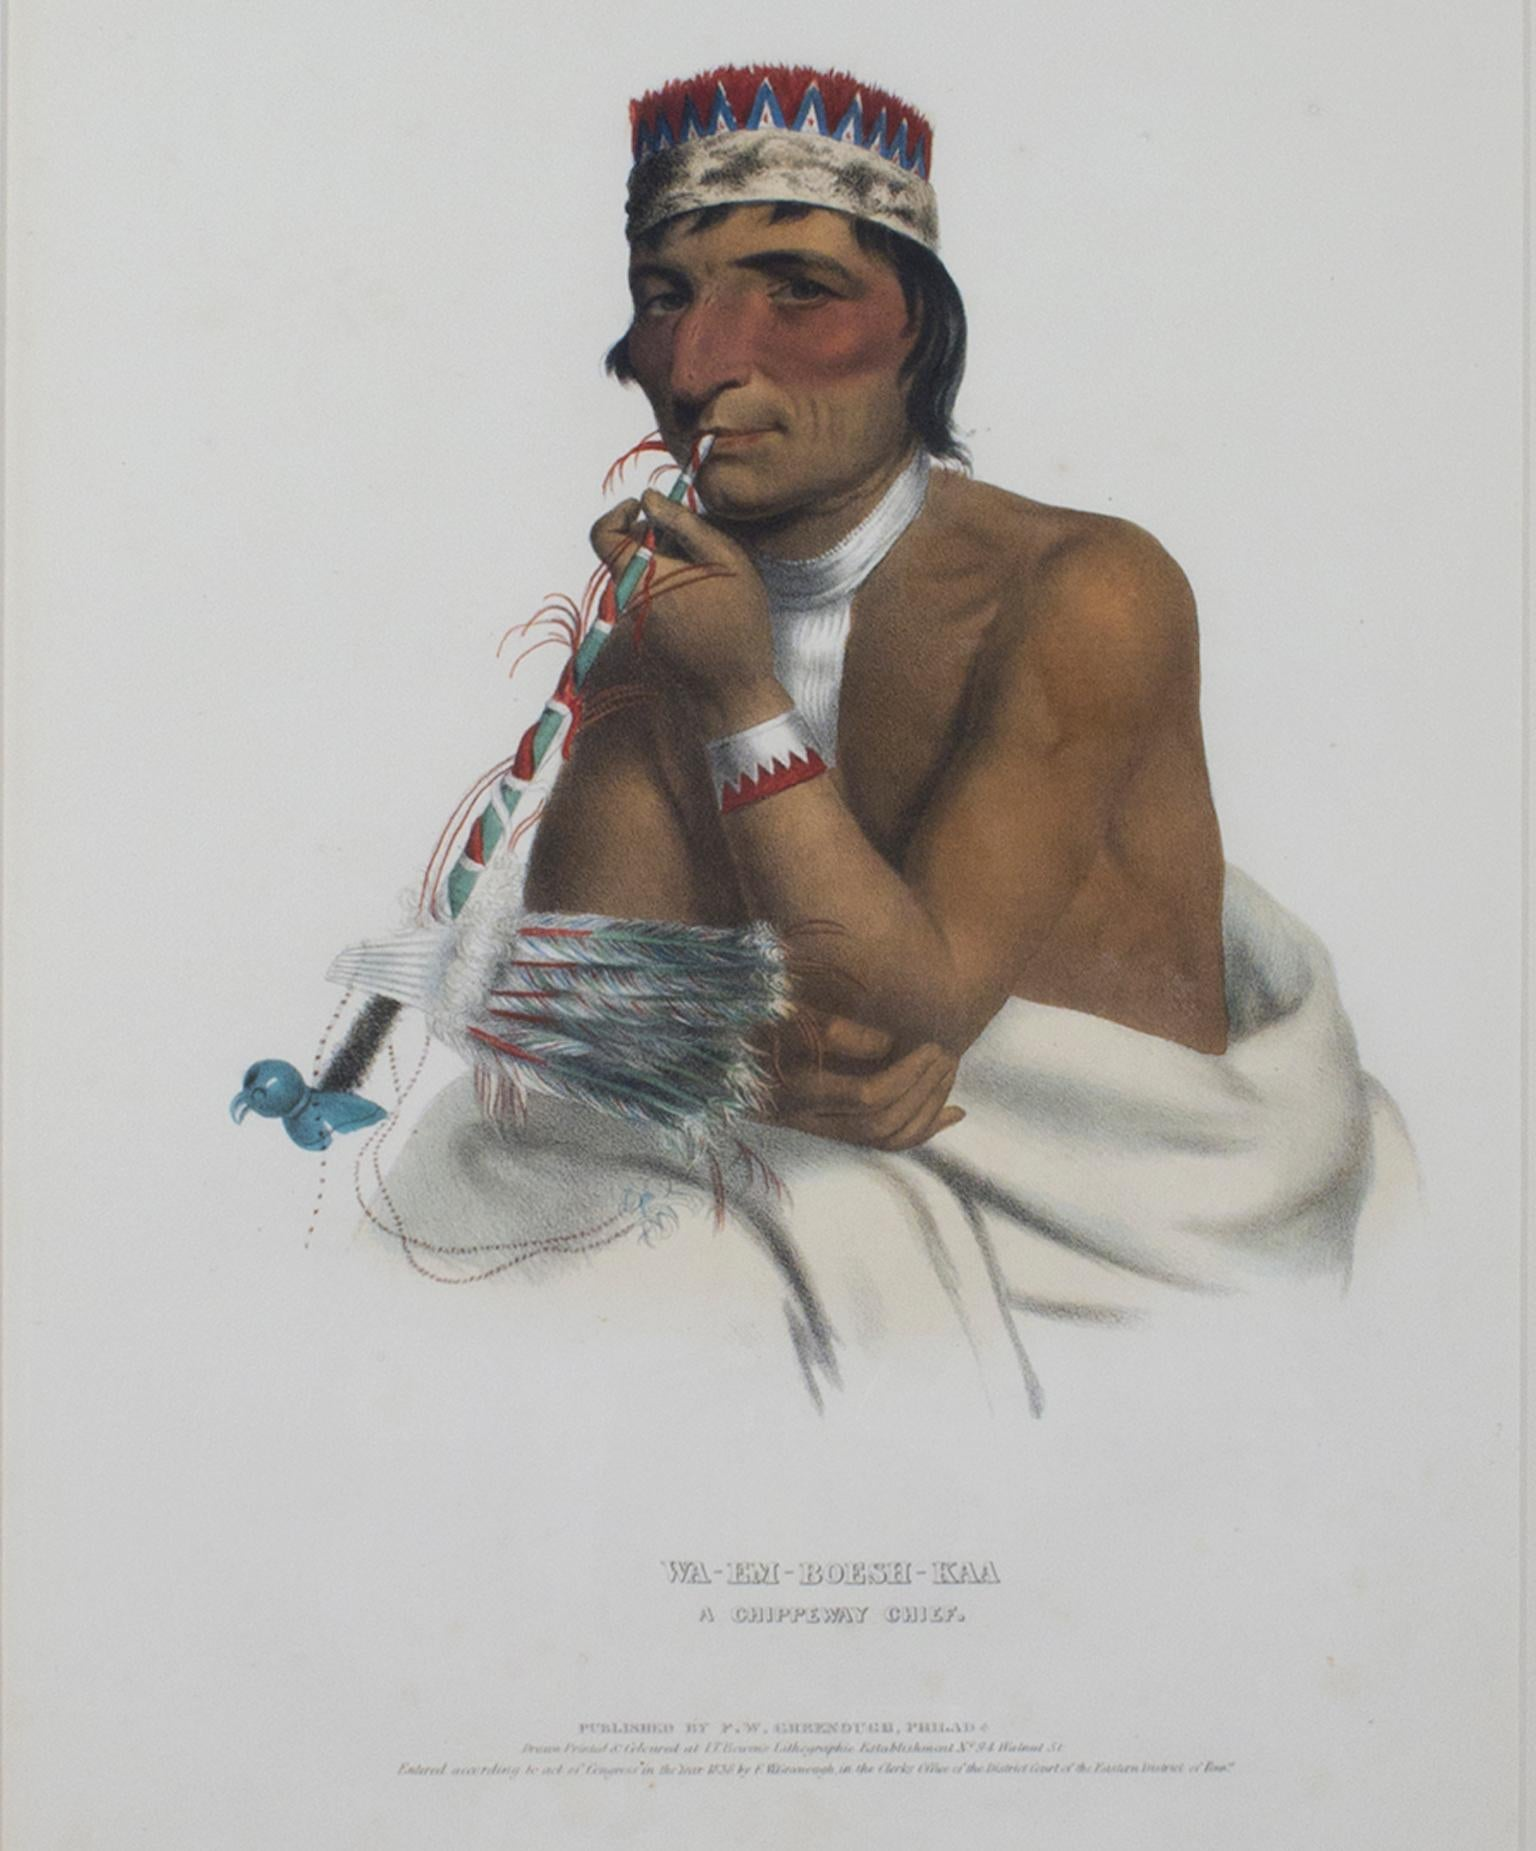 """""""Wa-Em-Boesh-Kaa, A Chippeway Chief,"""" Hand-colored Lithograph by McKenney & Hall"""